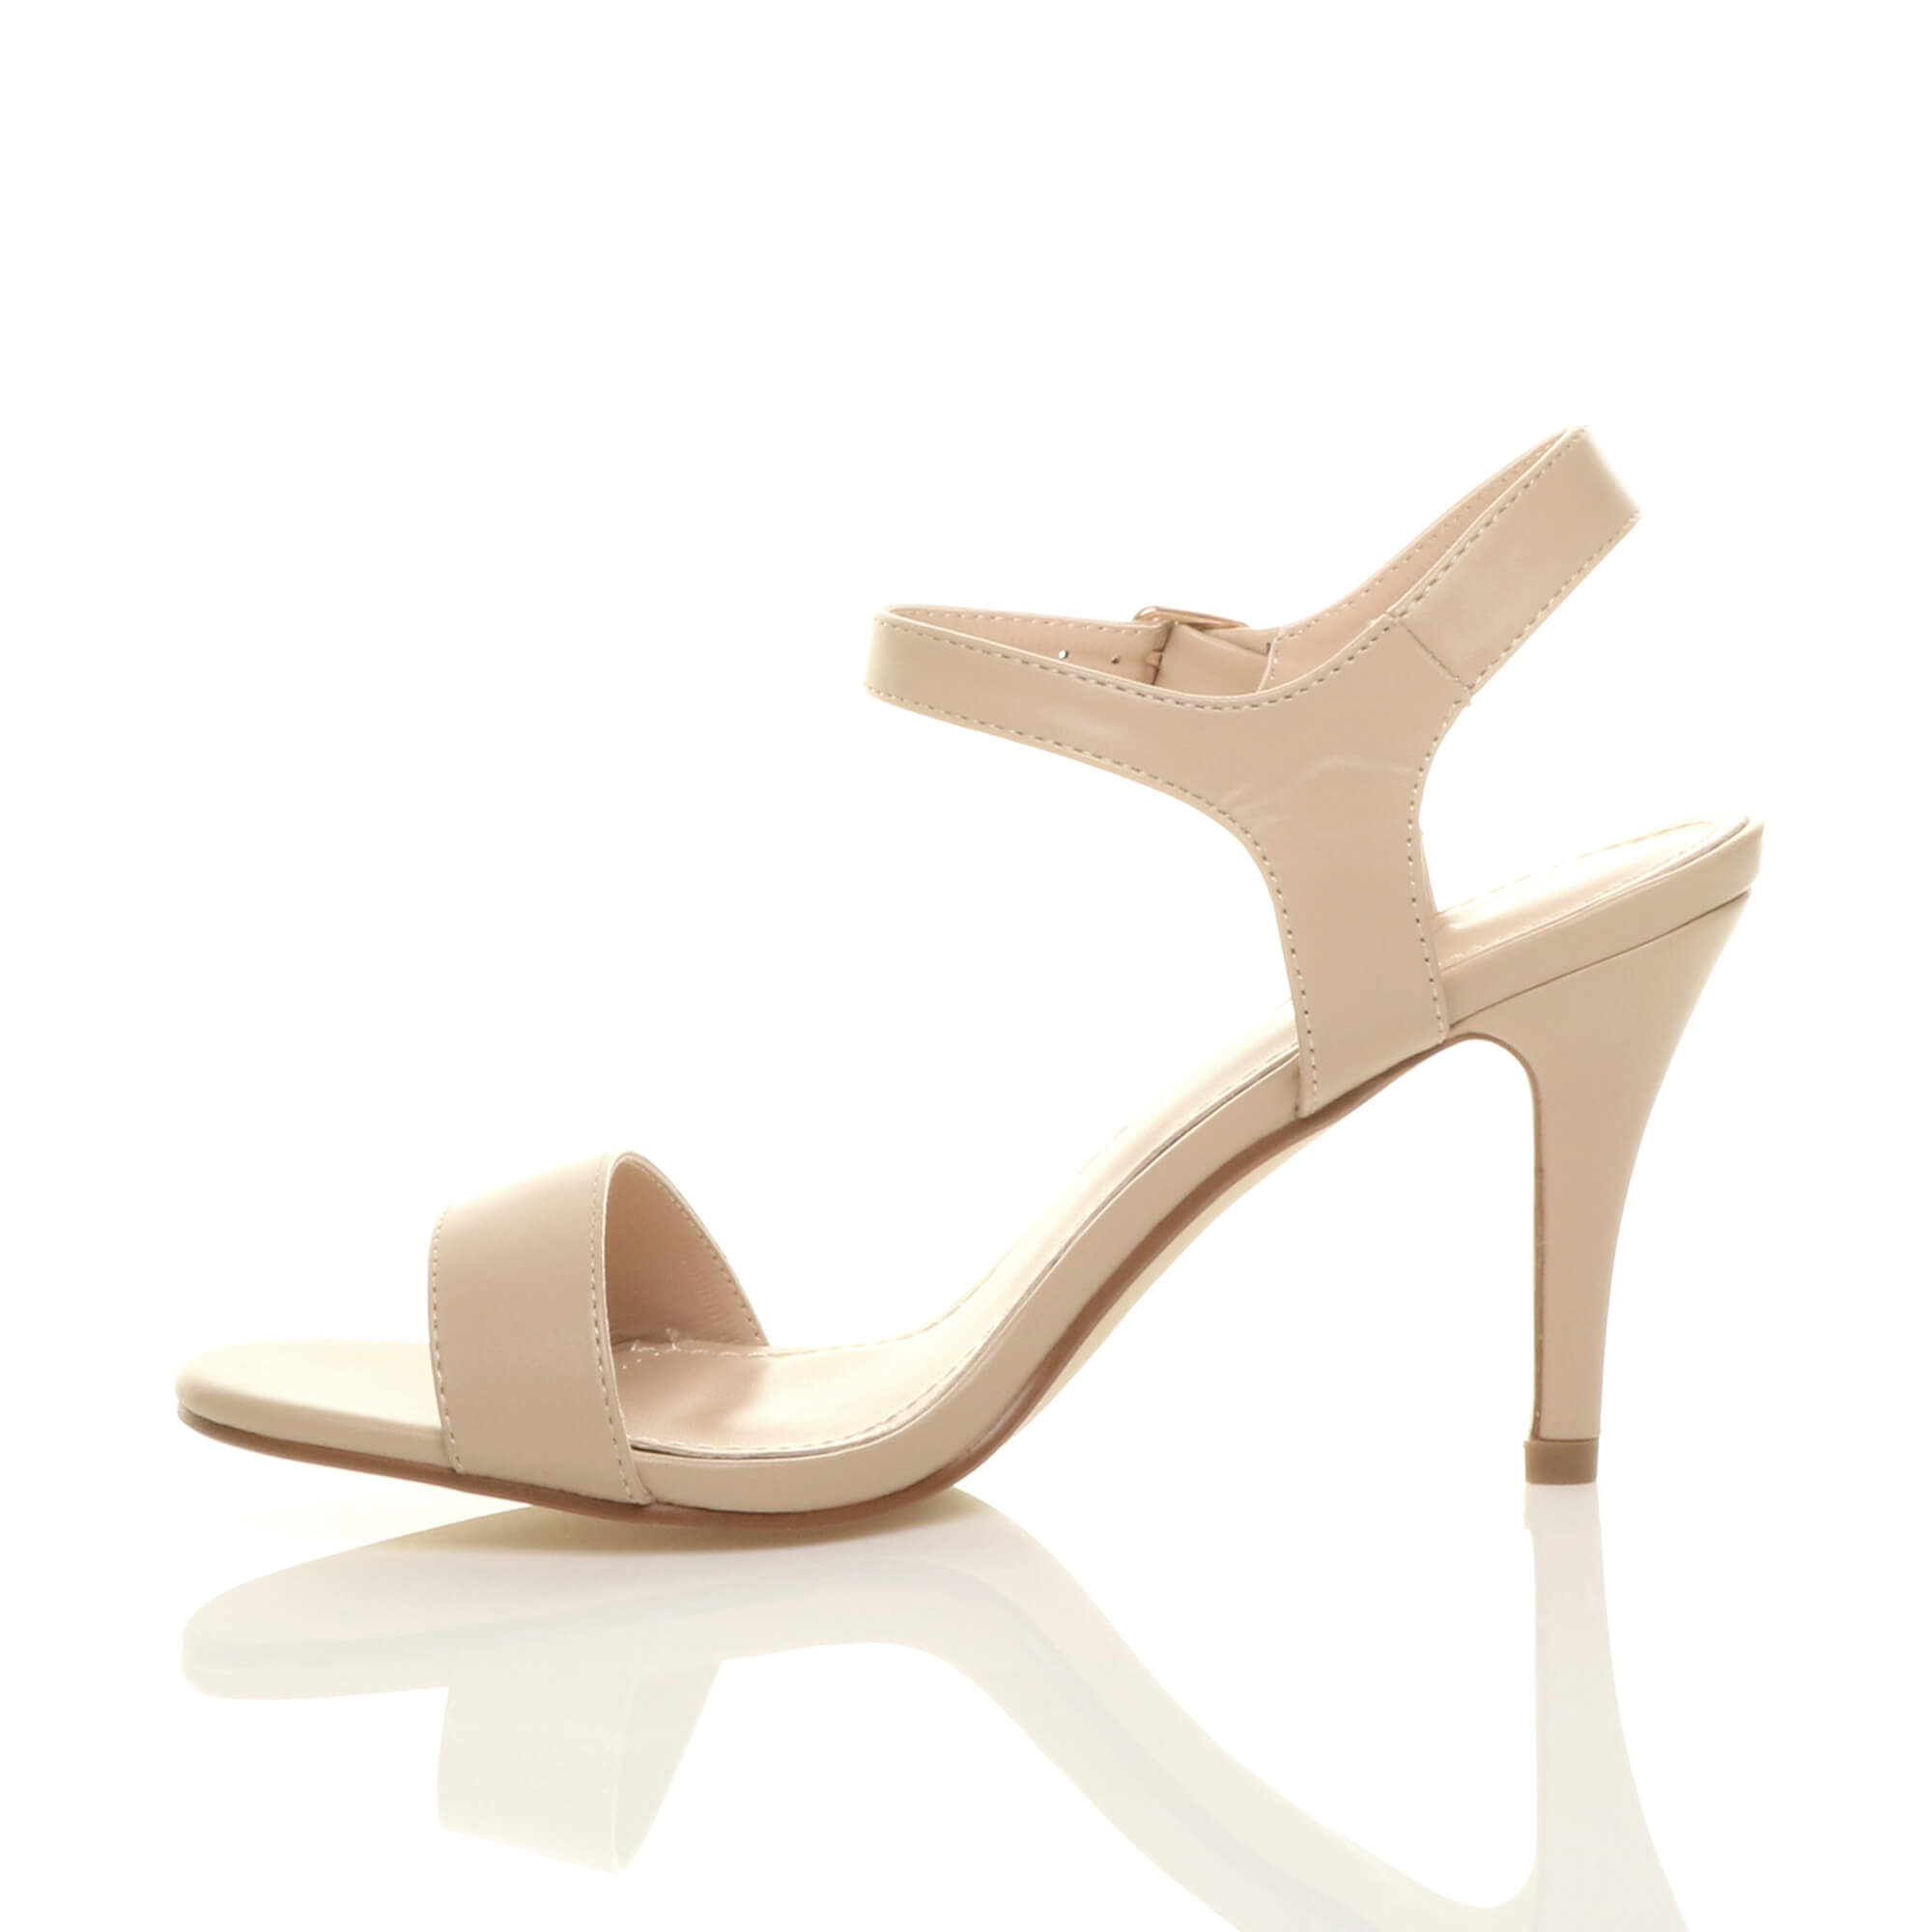 WOMENS-LADIES-HIGH-HEEL-BUCKLE-STRAPPY-BASIC-BARELY-THERE-SANDALS-SHOES-SIZE thumbnail 95